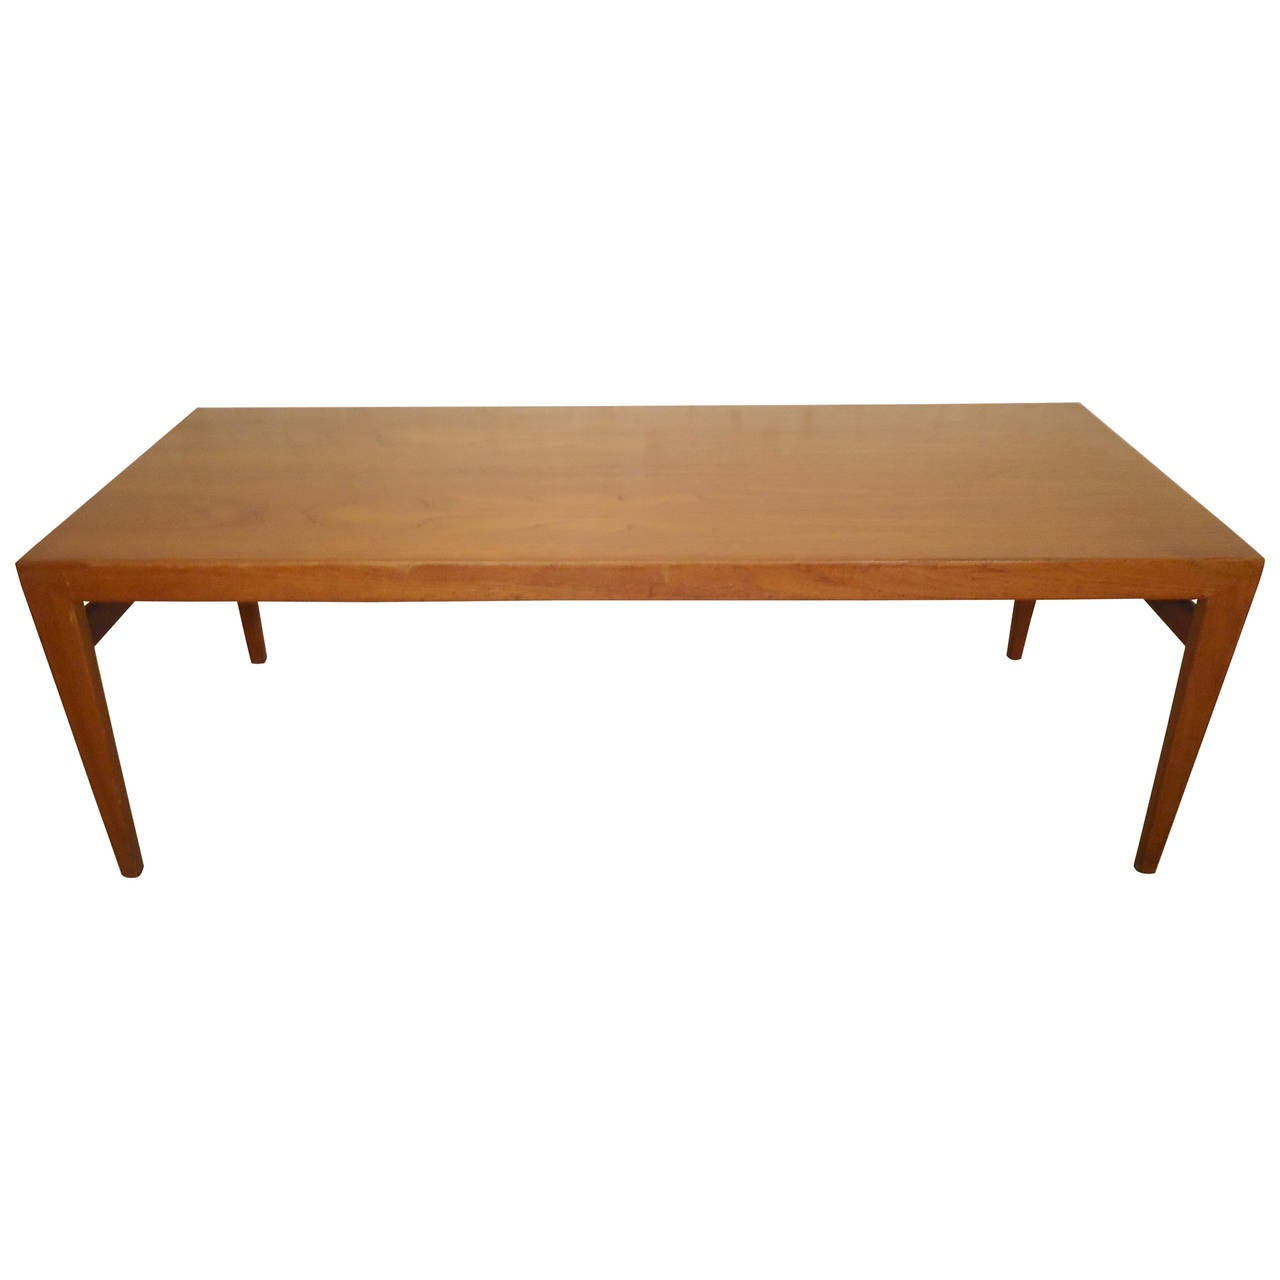 Rare Danish Extending Coffee Table For Sale At 1stdibs